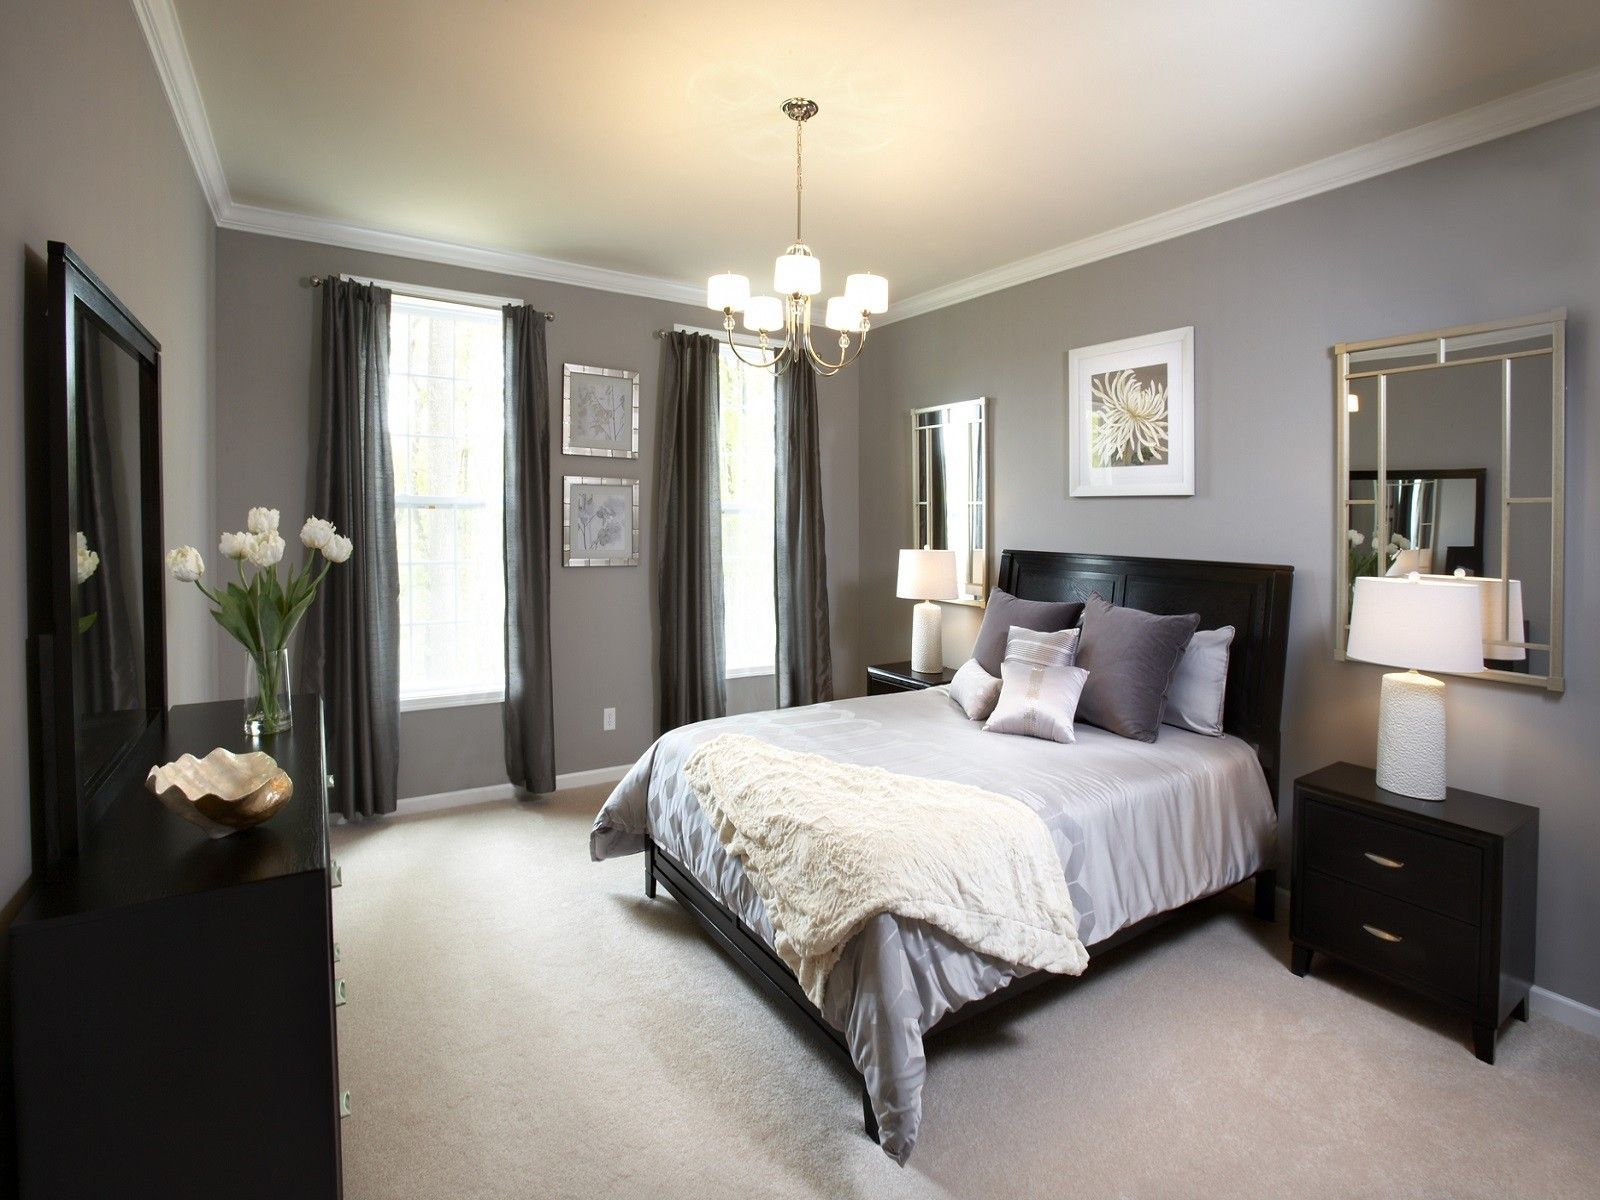 Bedroom Decor With Grey Walls best 25+ gray bedroom ideas on pinterest | grey bedrooms, grey